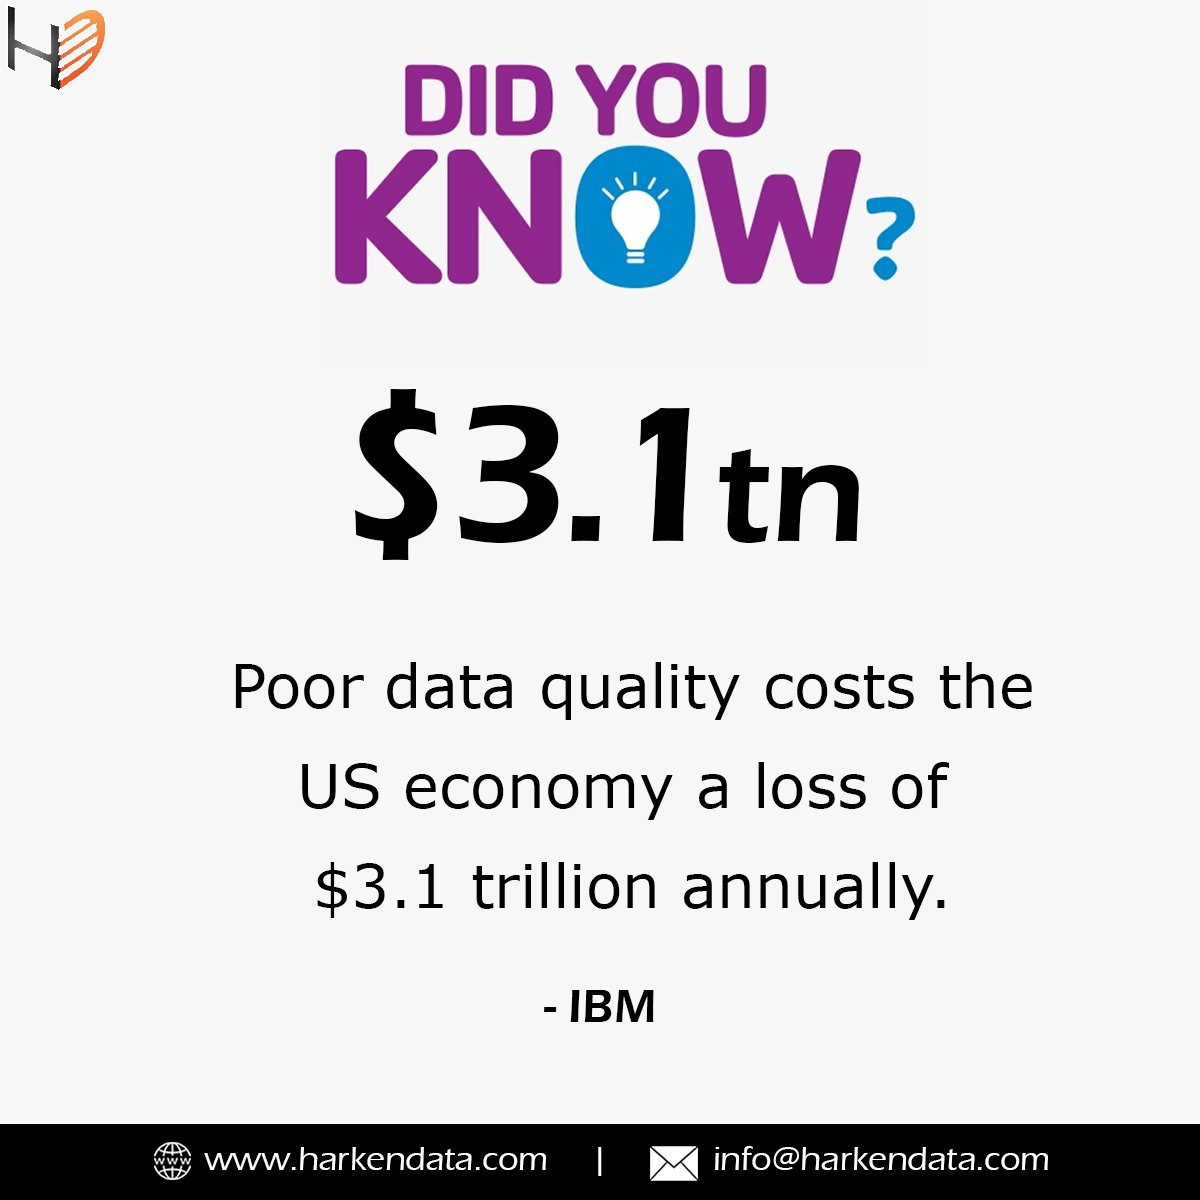 Did you know: Poor data quality costs the US economy a loss of $ 3.1 trillion annually.  #Data #Loss #dataquality #dataqualitymanagement #FridayThoughts #FridayMotivation